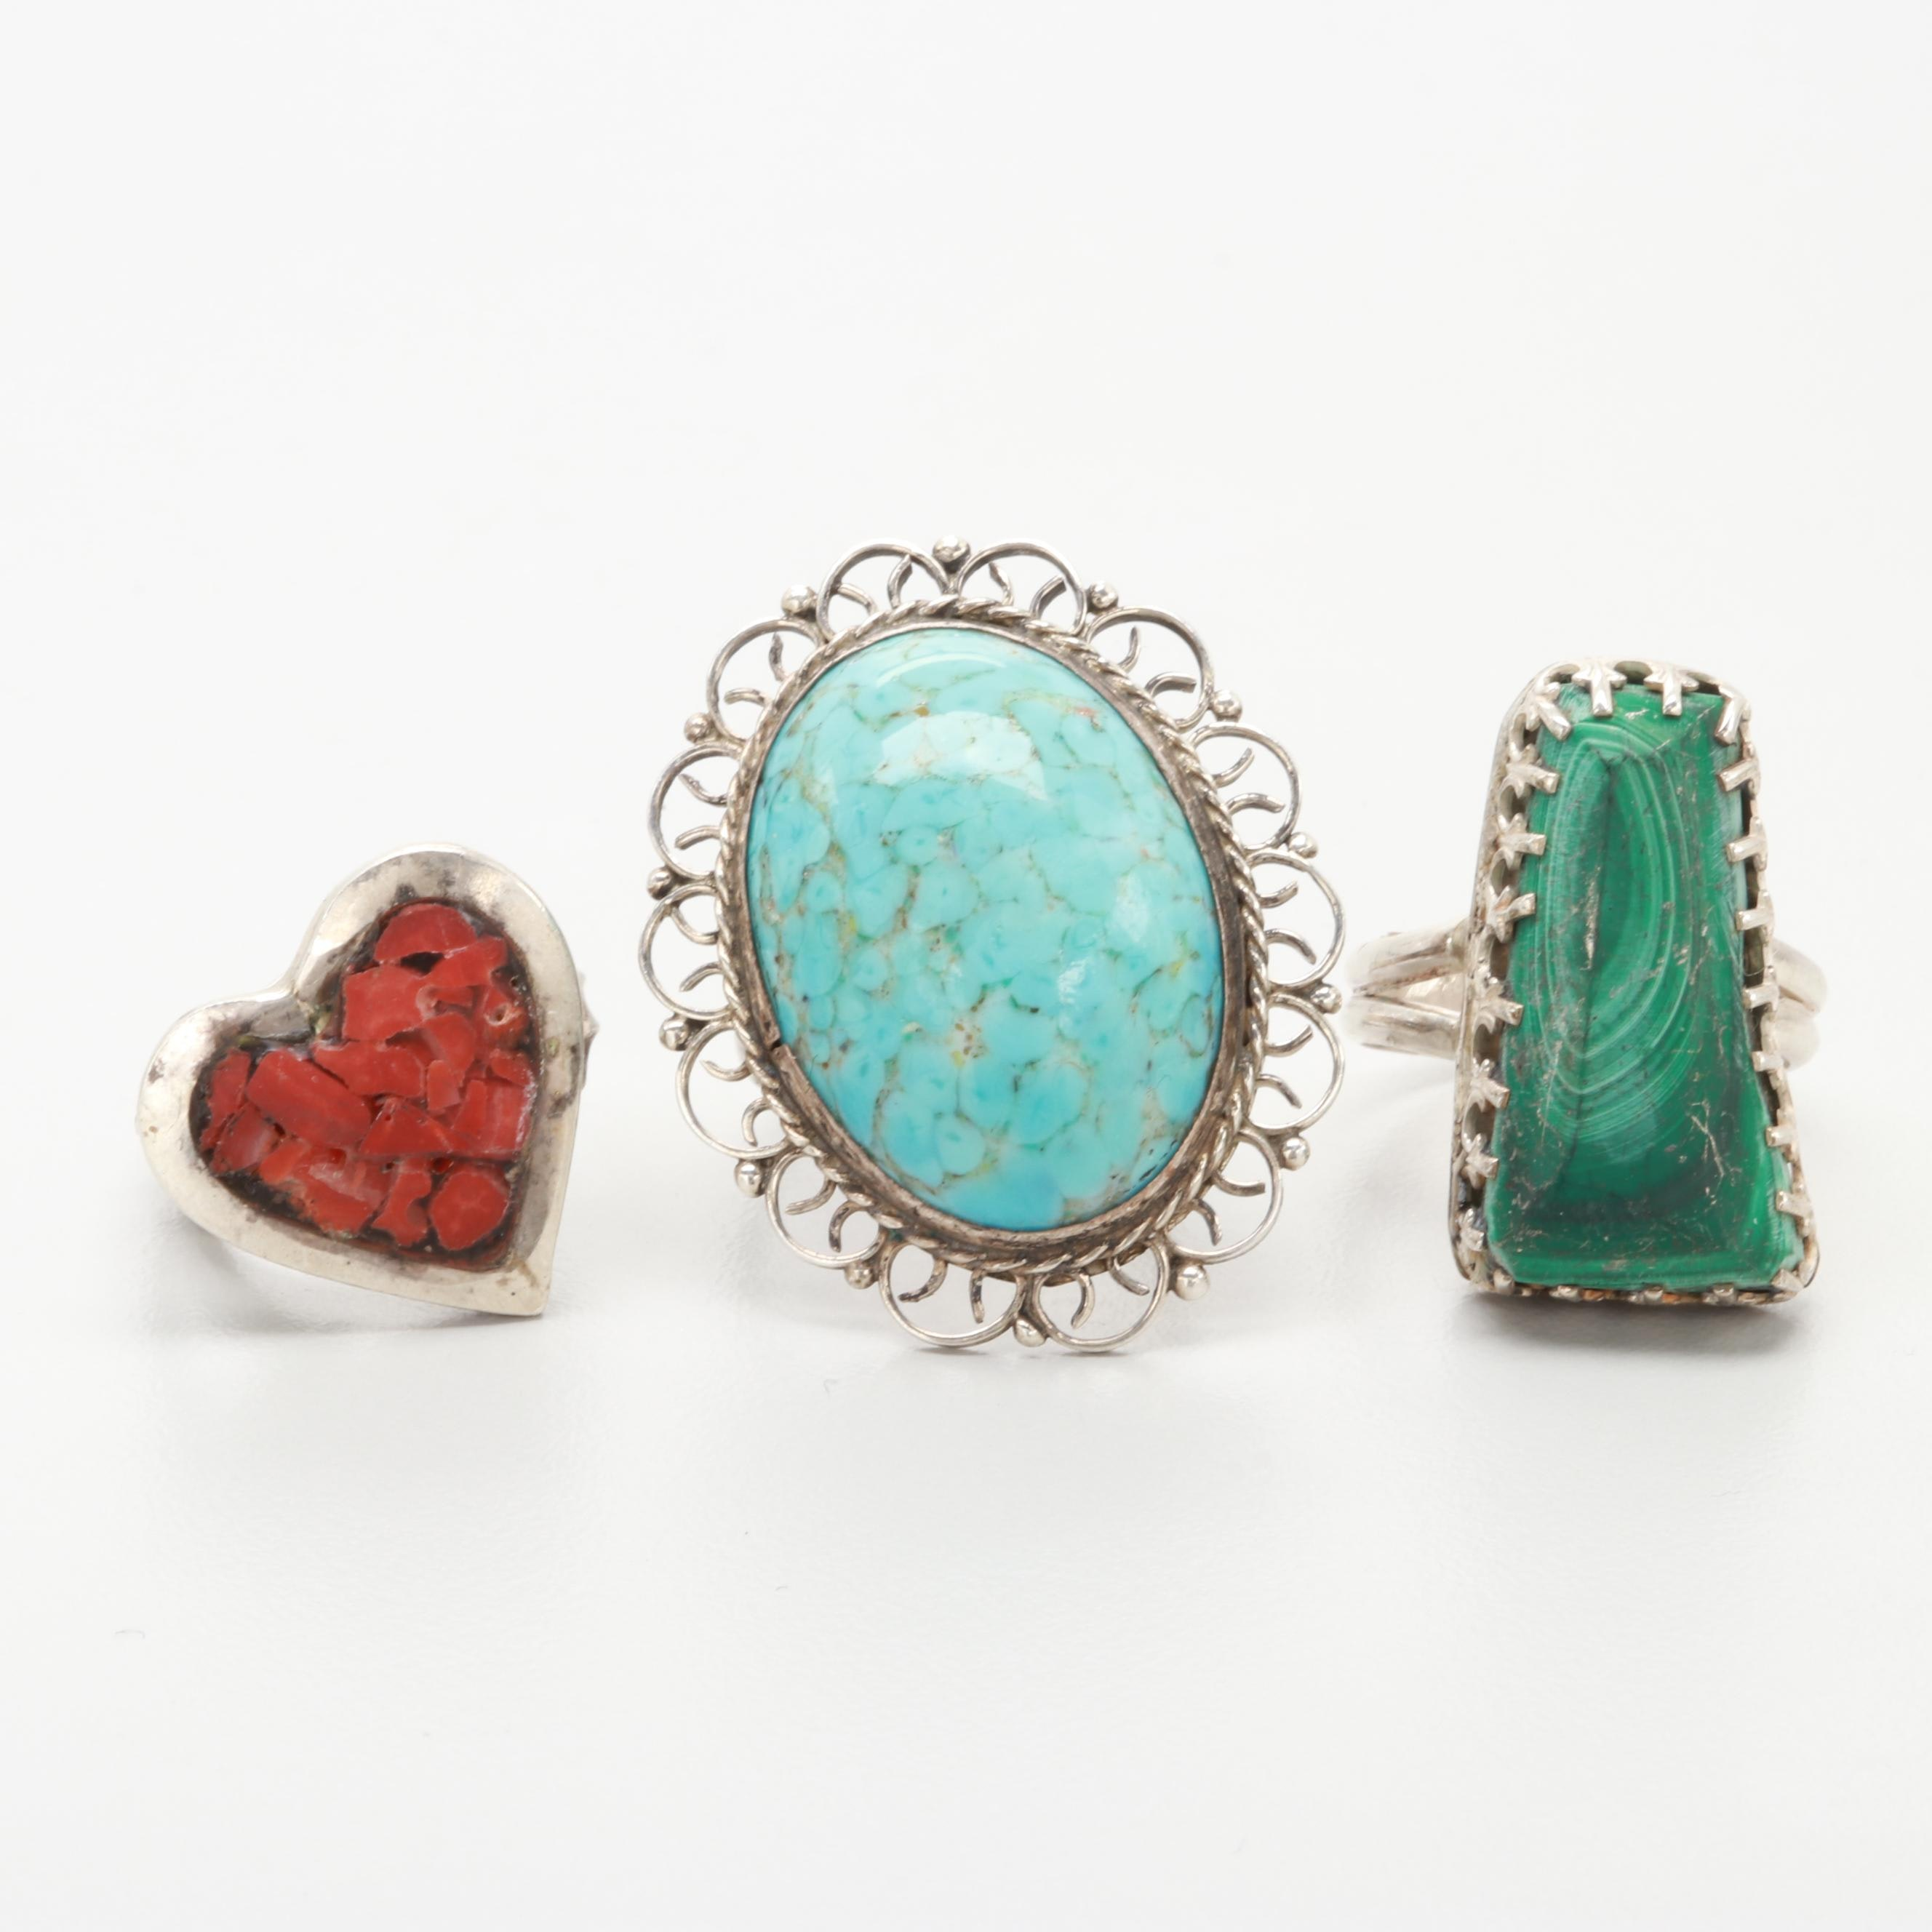 Sterling Glass, Malachite and Chip Stone in Resin Rings Featuring Bill Kirkham